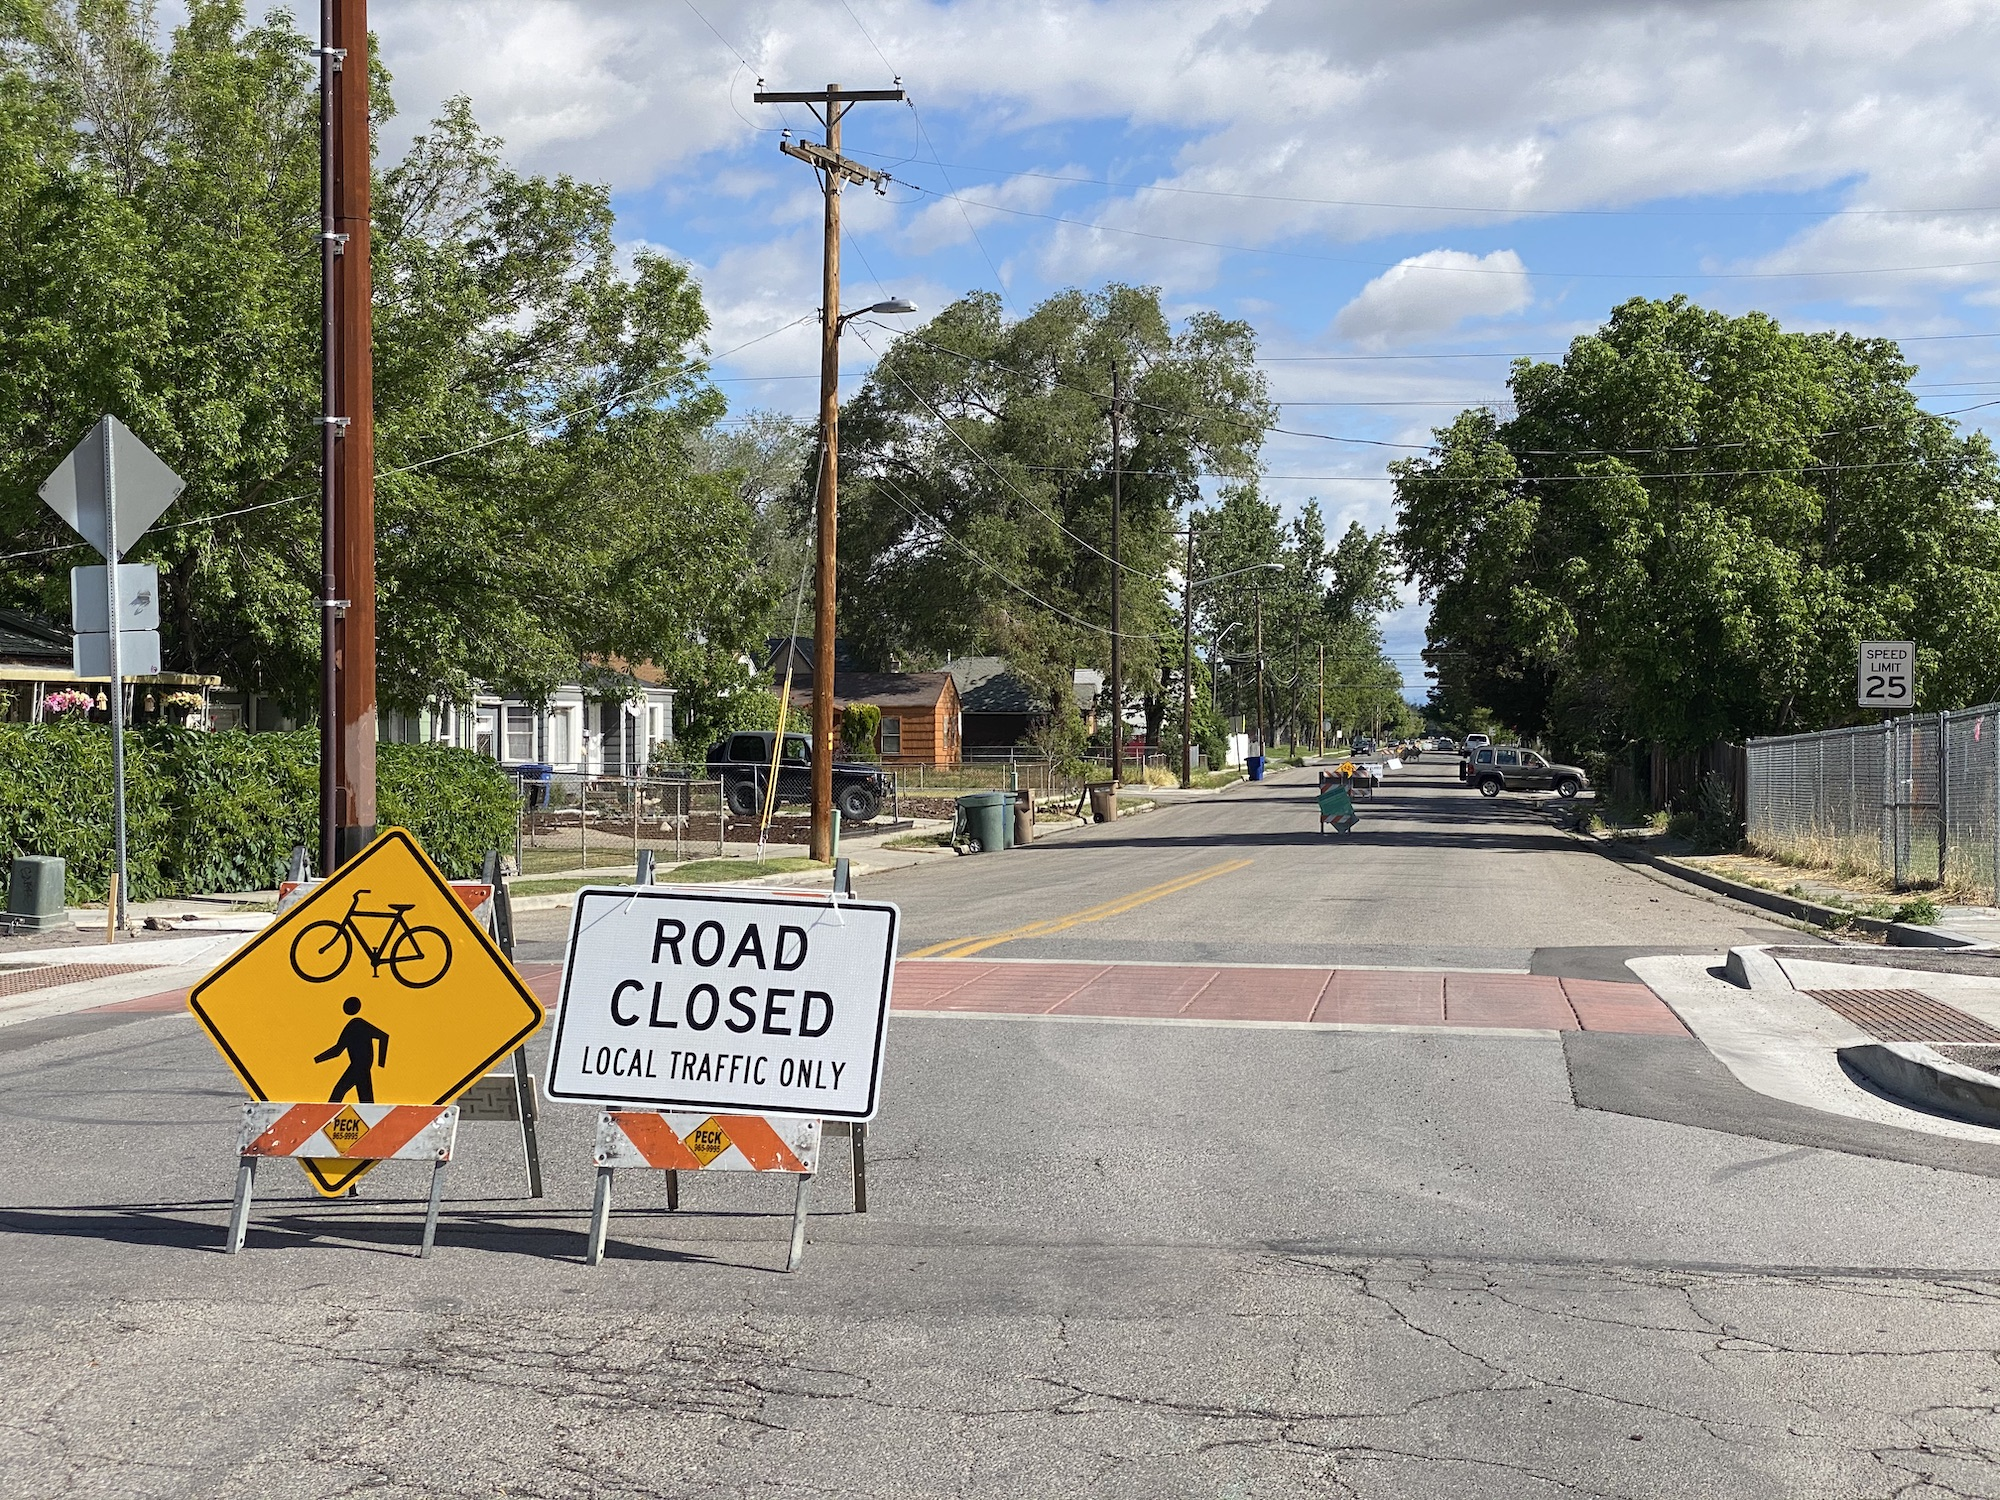 """Signs closing streets except to local traffic as part of SLC Mayor Erin Mendenhall's """"Stay Safe, Stay Active"""" plan during the Covid-19 pandemic. Photo by Turner Bitton"""